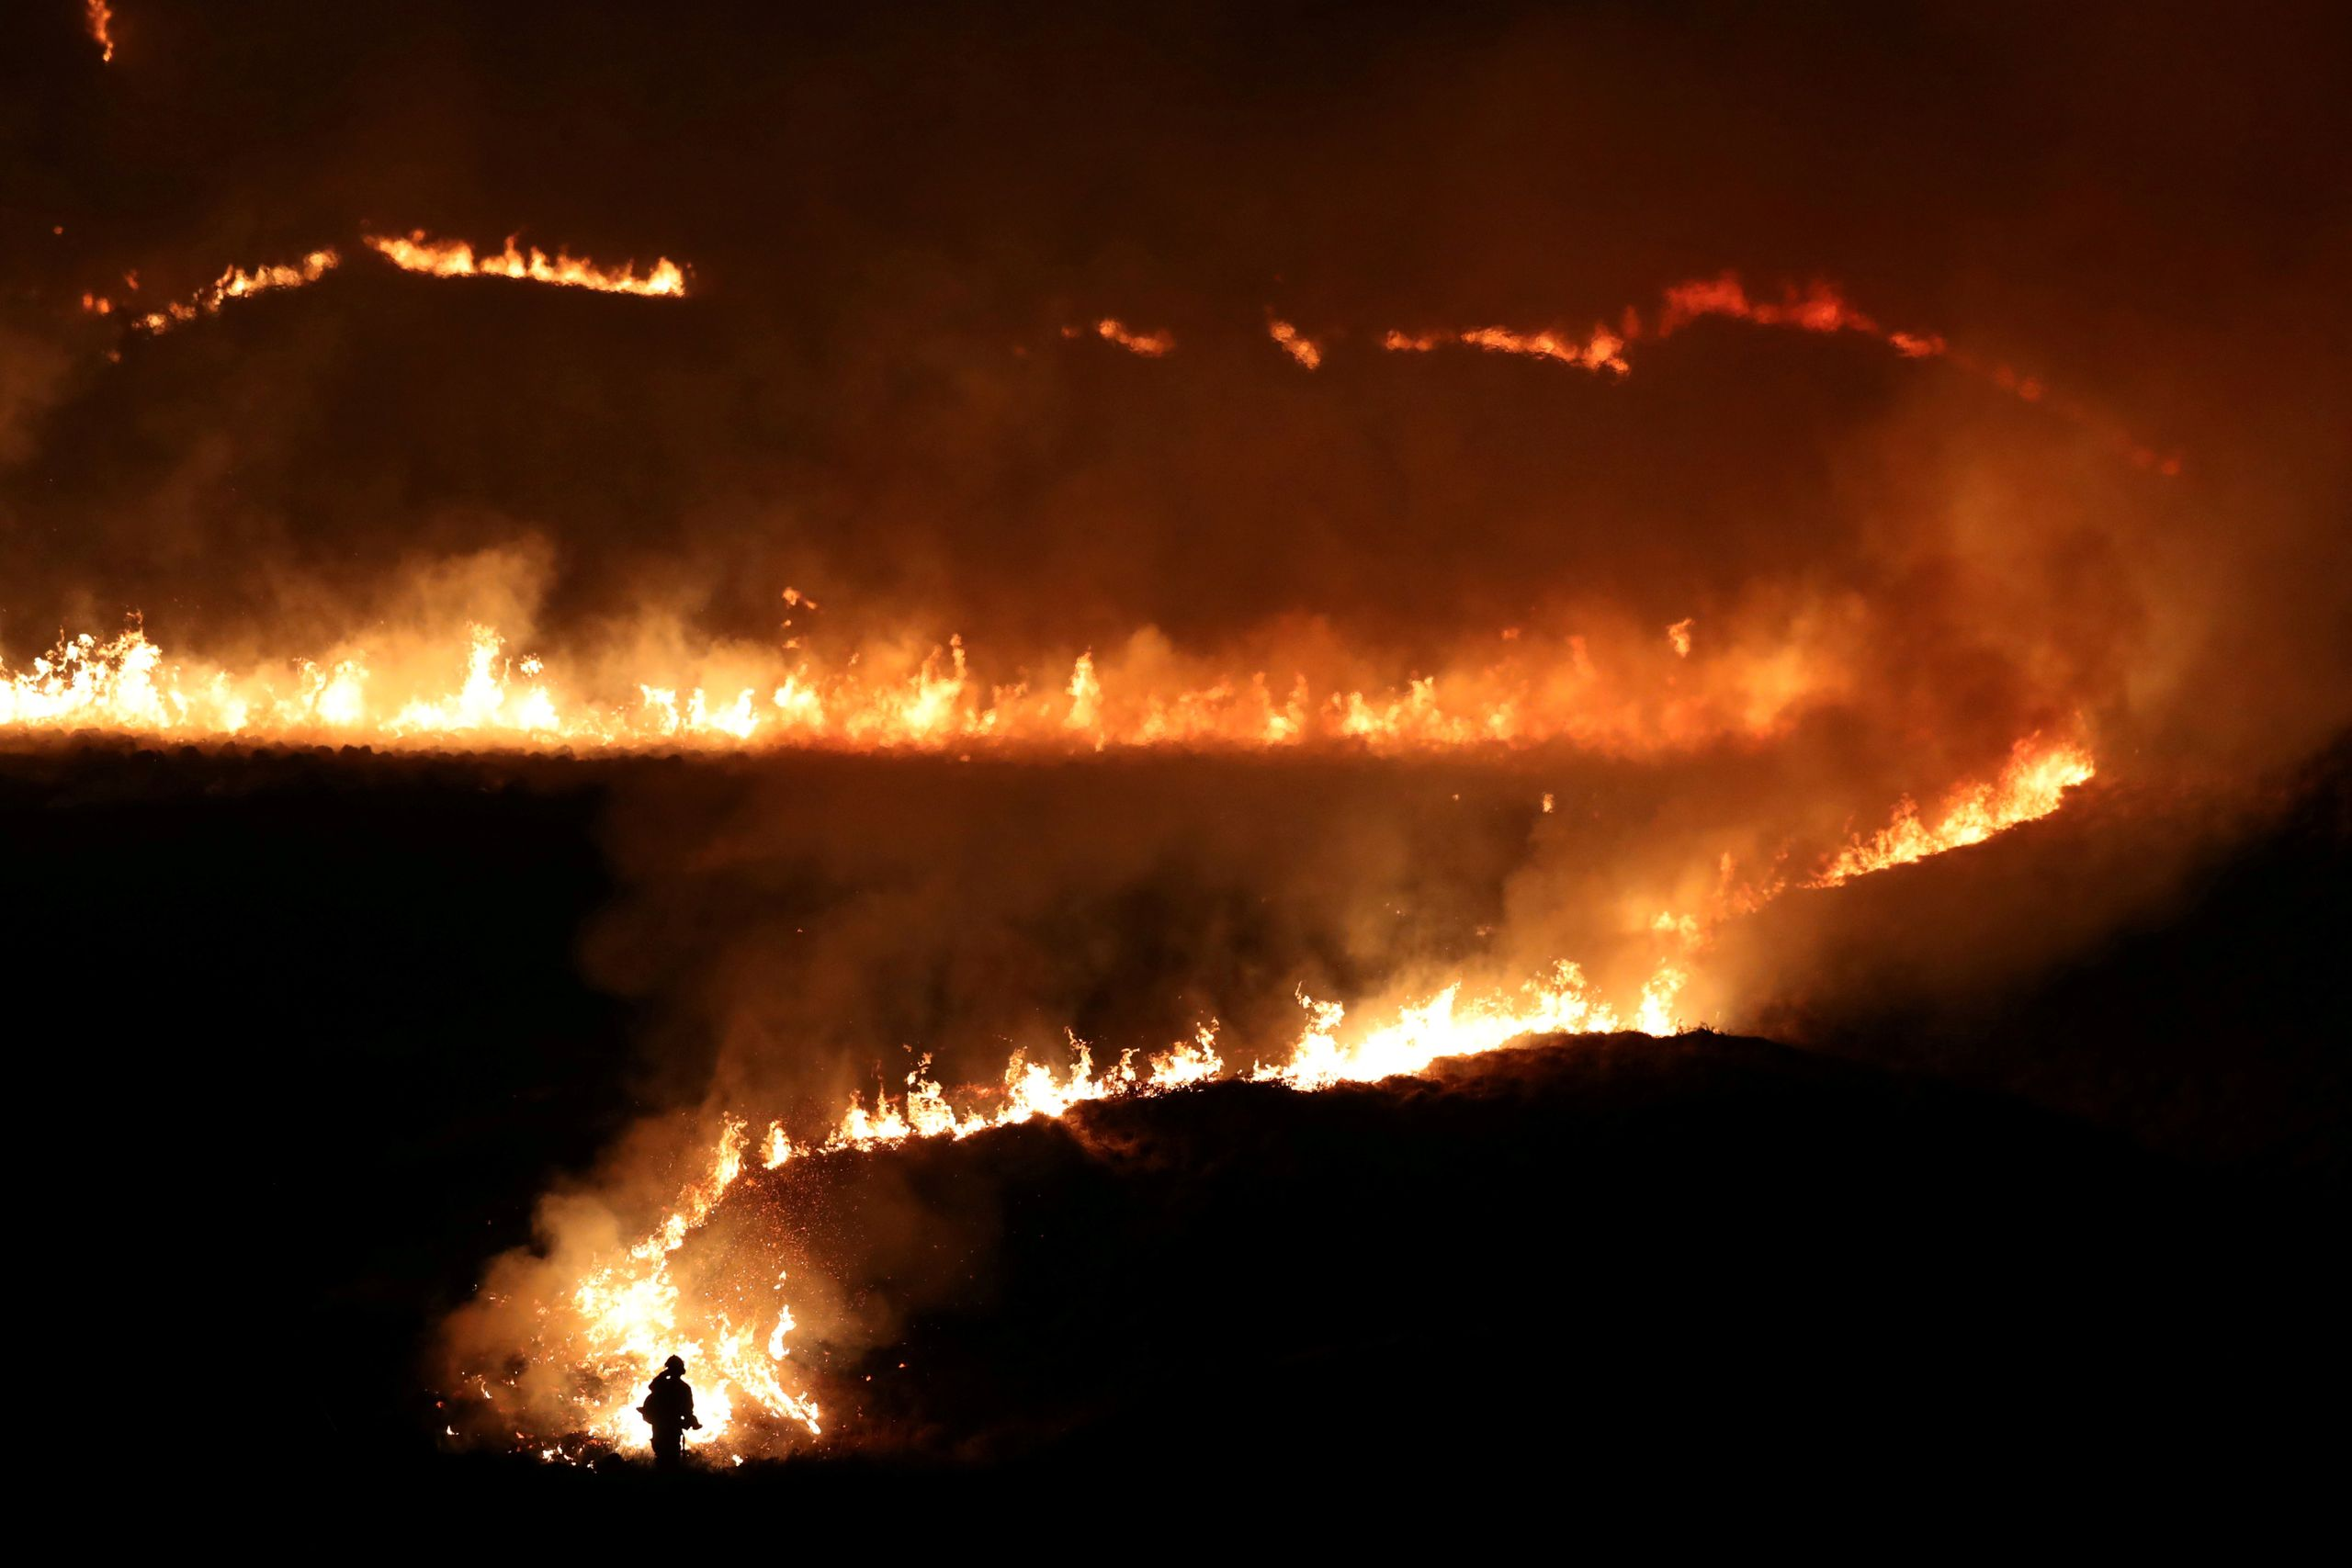 A fire is seen burning on Saddleworth Moor near the town of Diggle, England, Feb. 27, 2019.